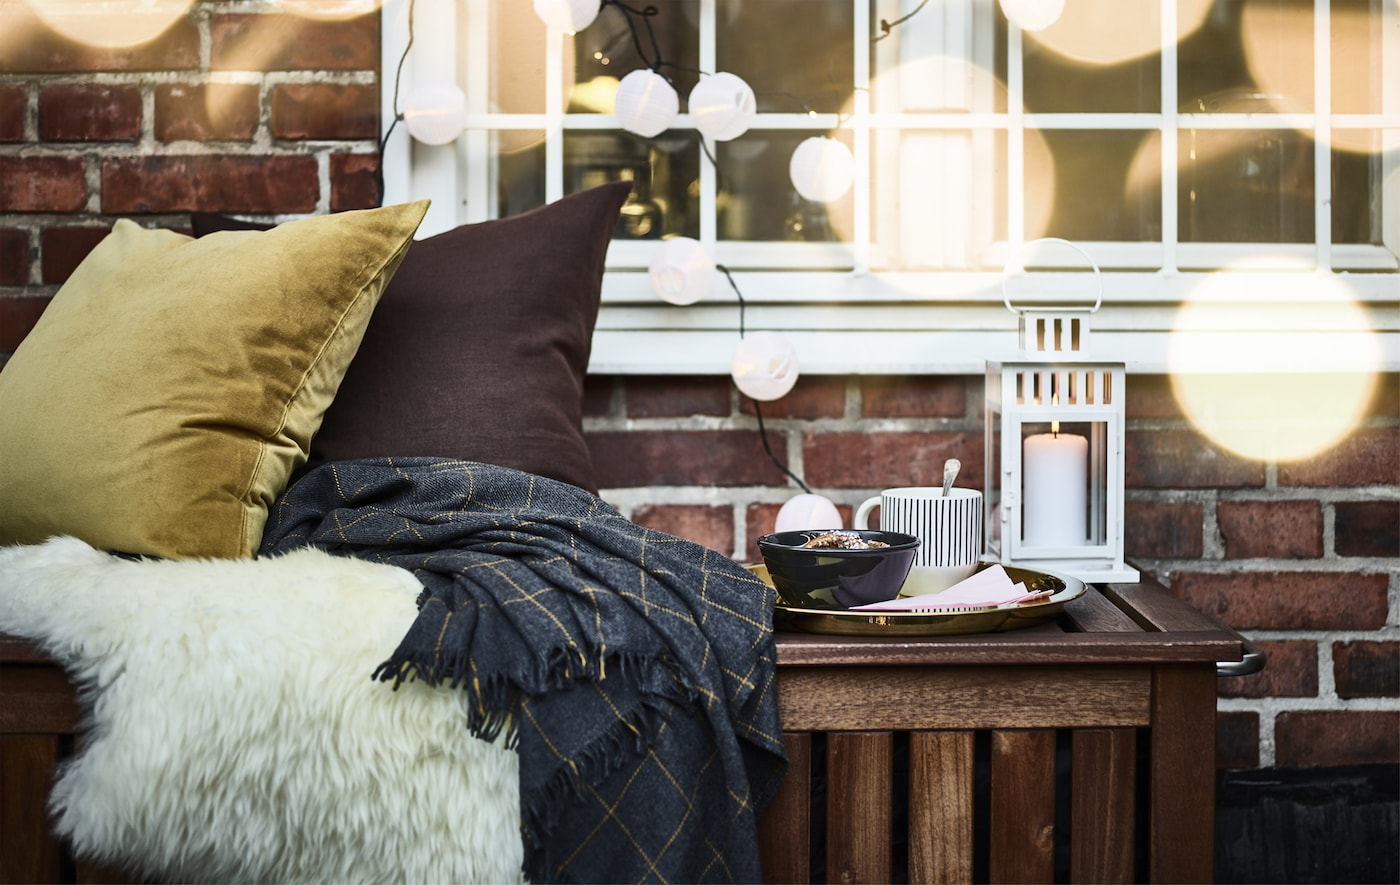 Cushions and throws, a tray with a bowl and a cup, and a lantern on a bench outside a window hung with a lighting chain.